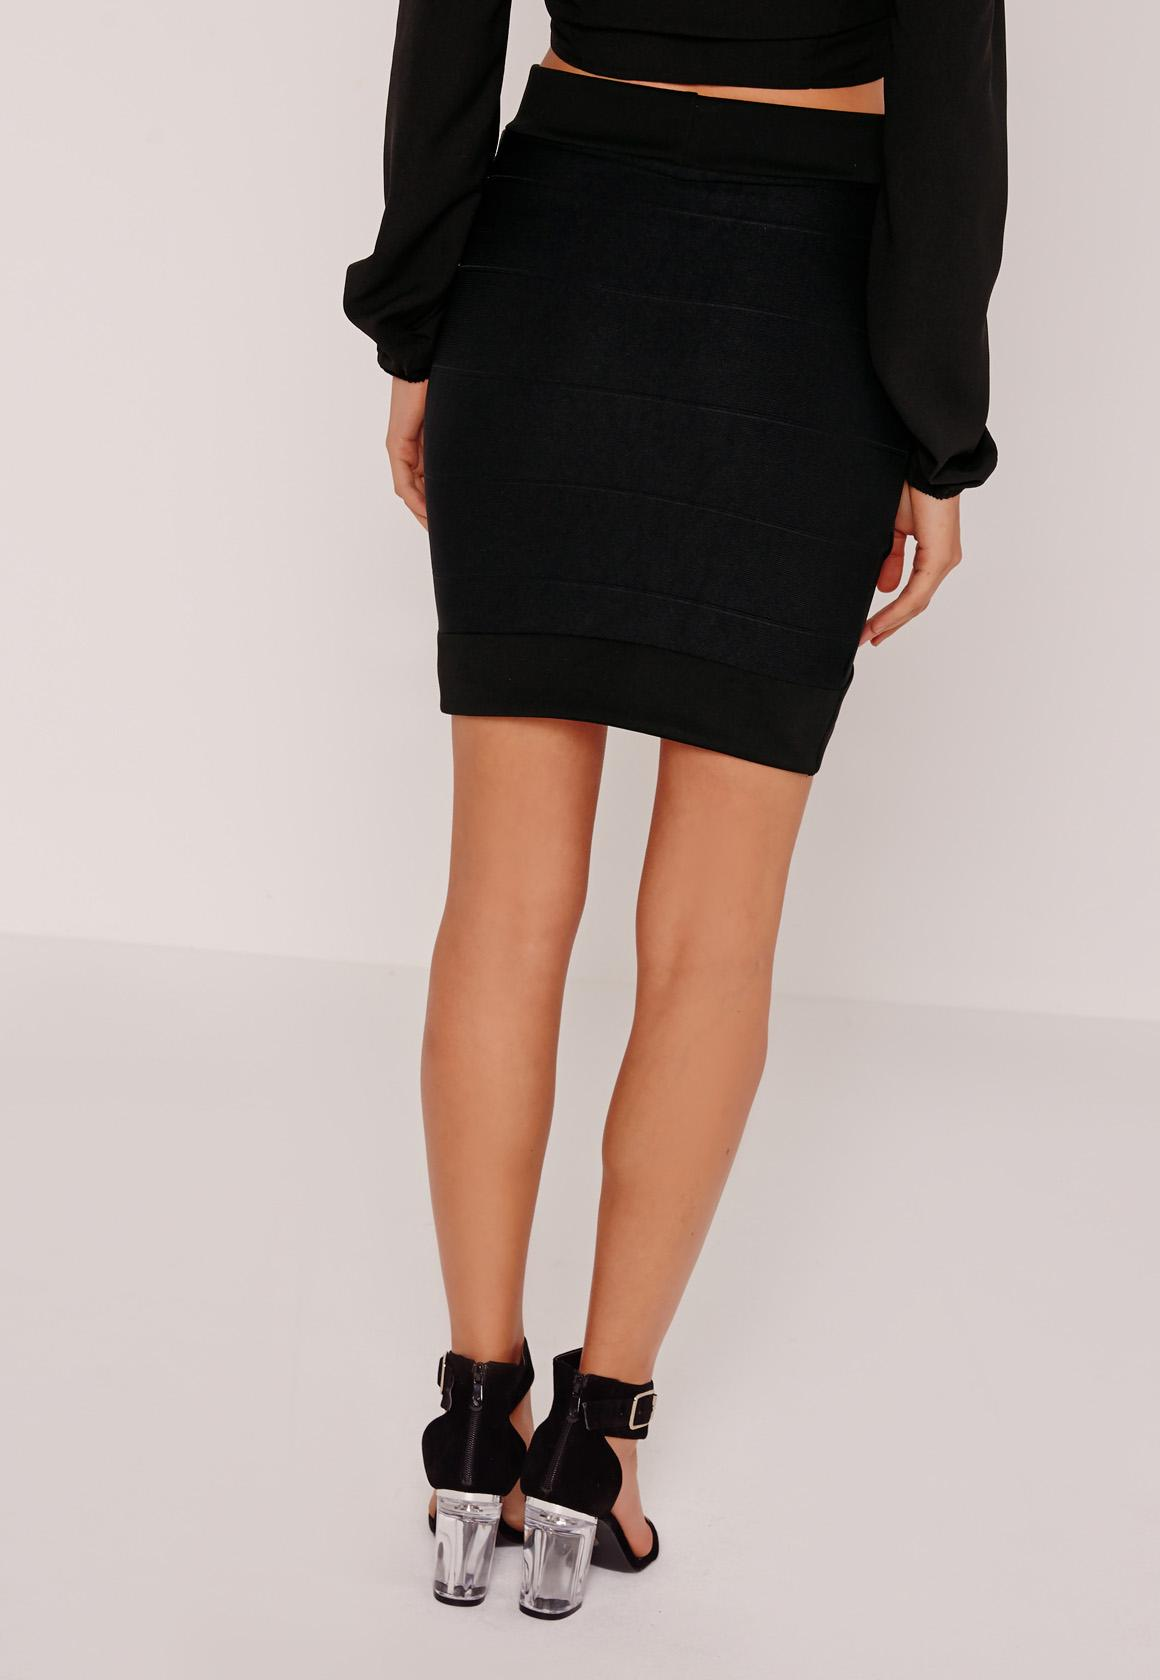 Bandage Bodycon Asymmetric Mini Skirt Black